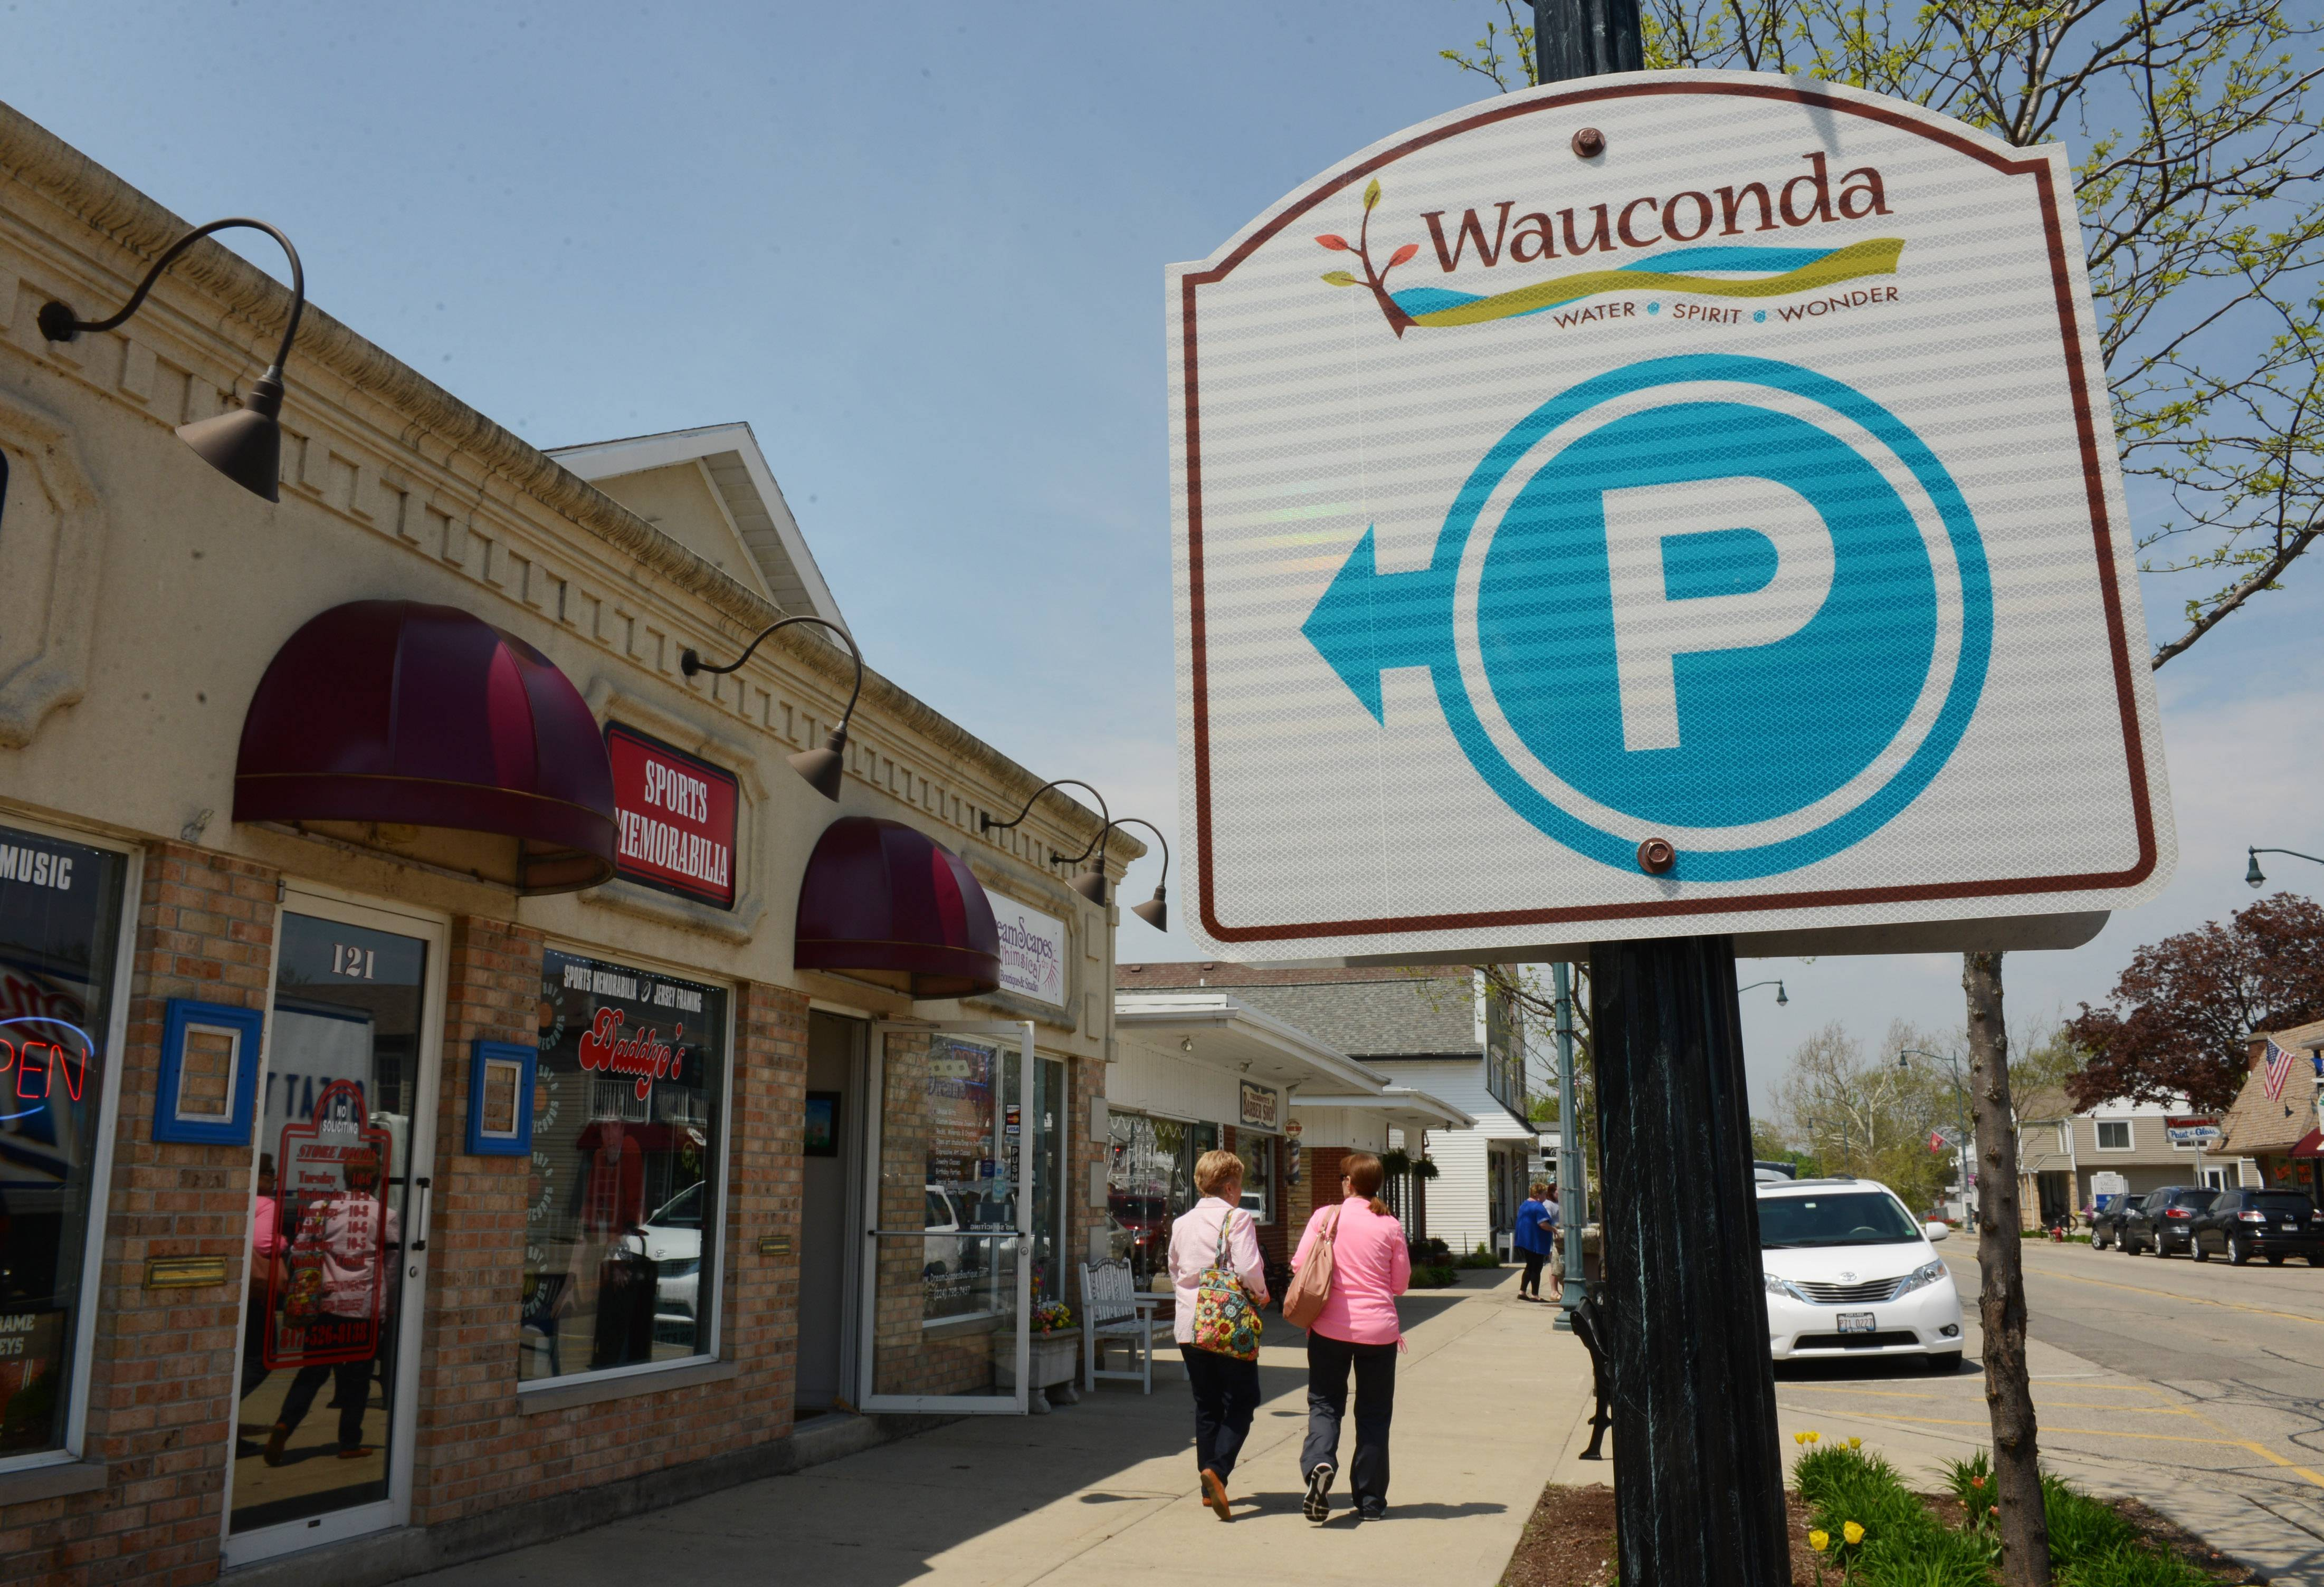 Wauconda adopts plan to attract new businesses, spur local economy